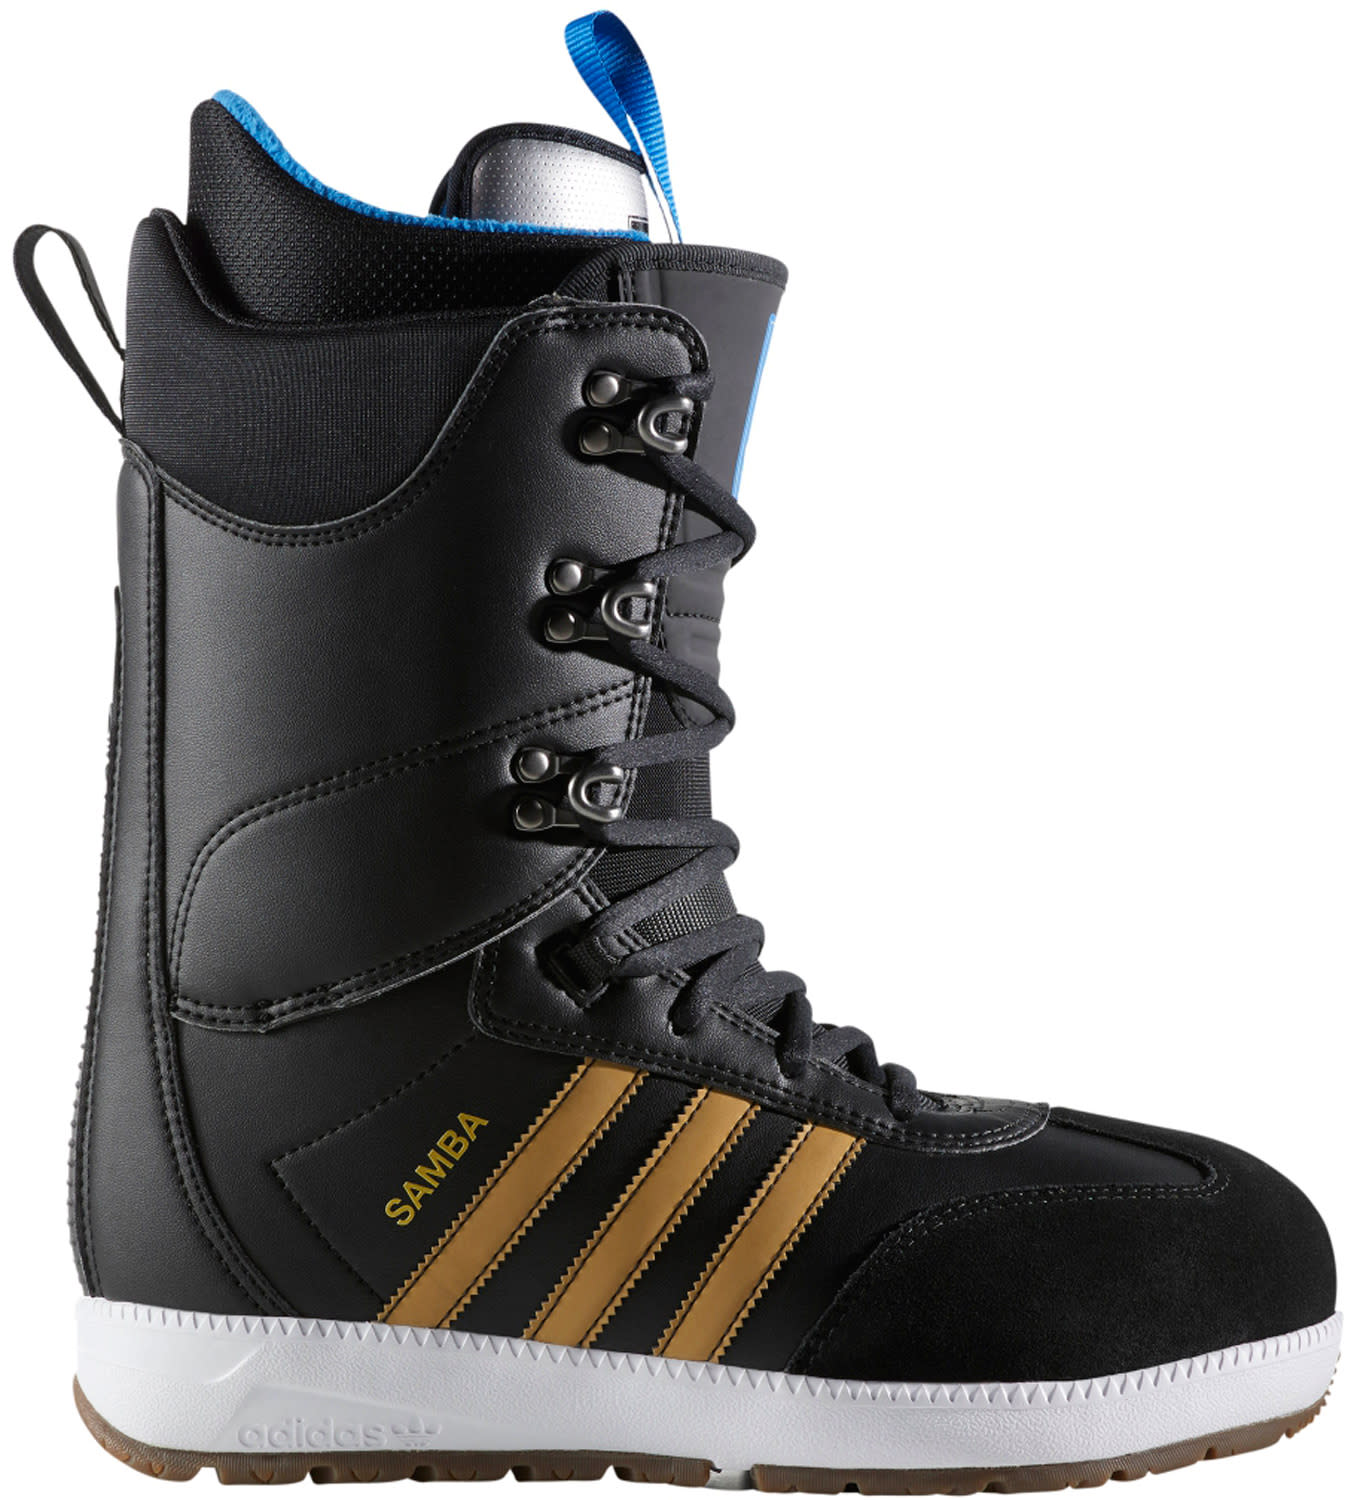 adidas samba adv snowboard boots 2018. Black Bedroom Furniture Sets. Home Design Ideas